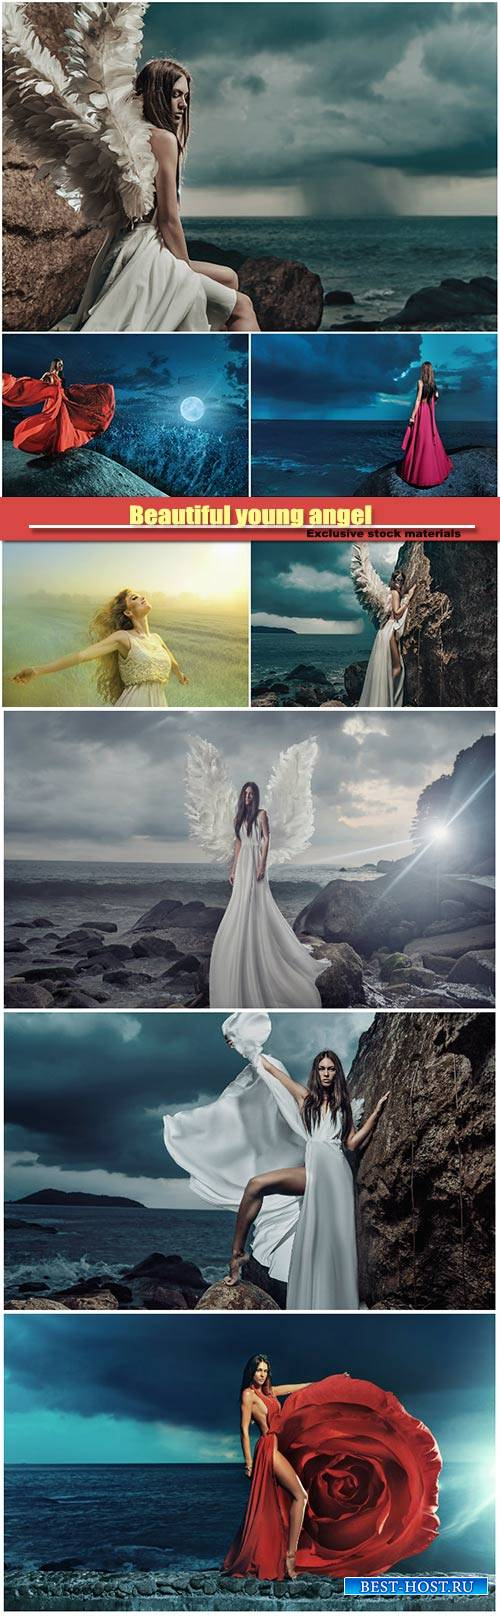 Beautiful young angel climbing on the cliff, lady looking at the storm on t ...